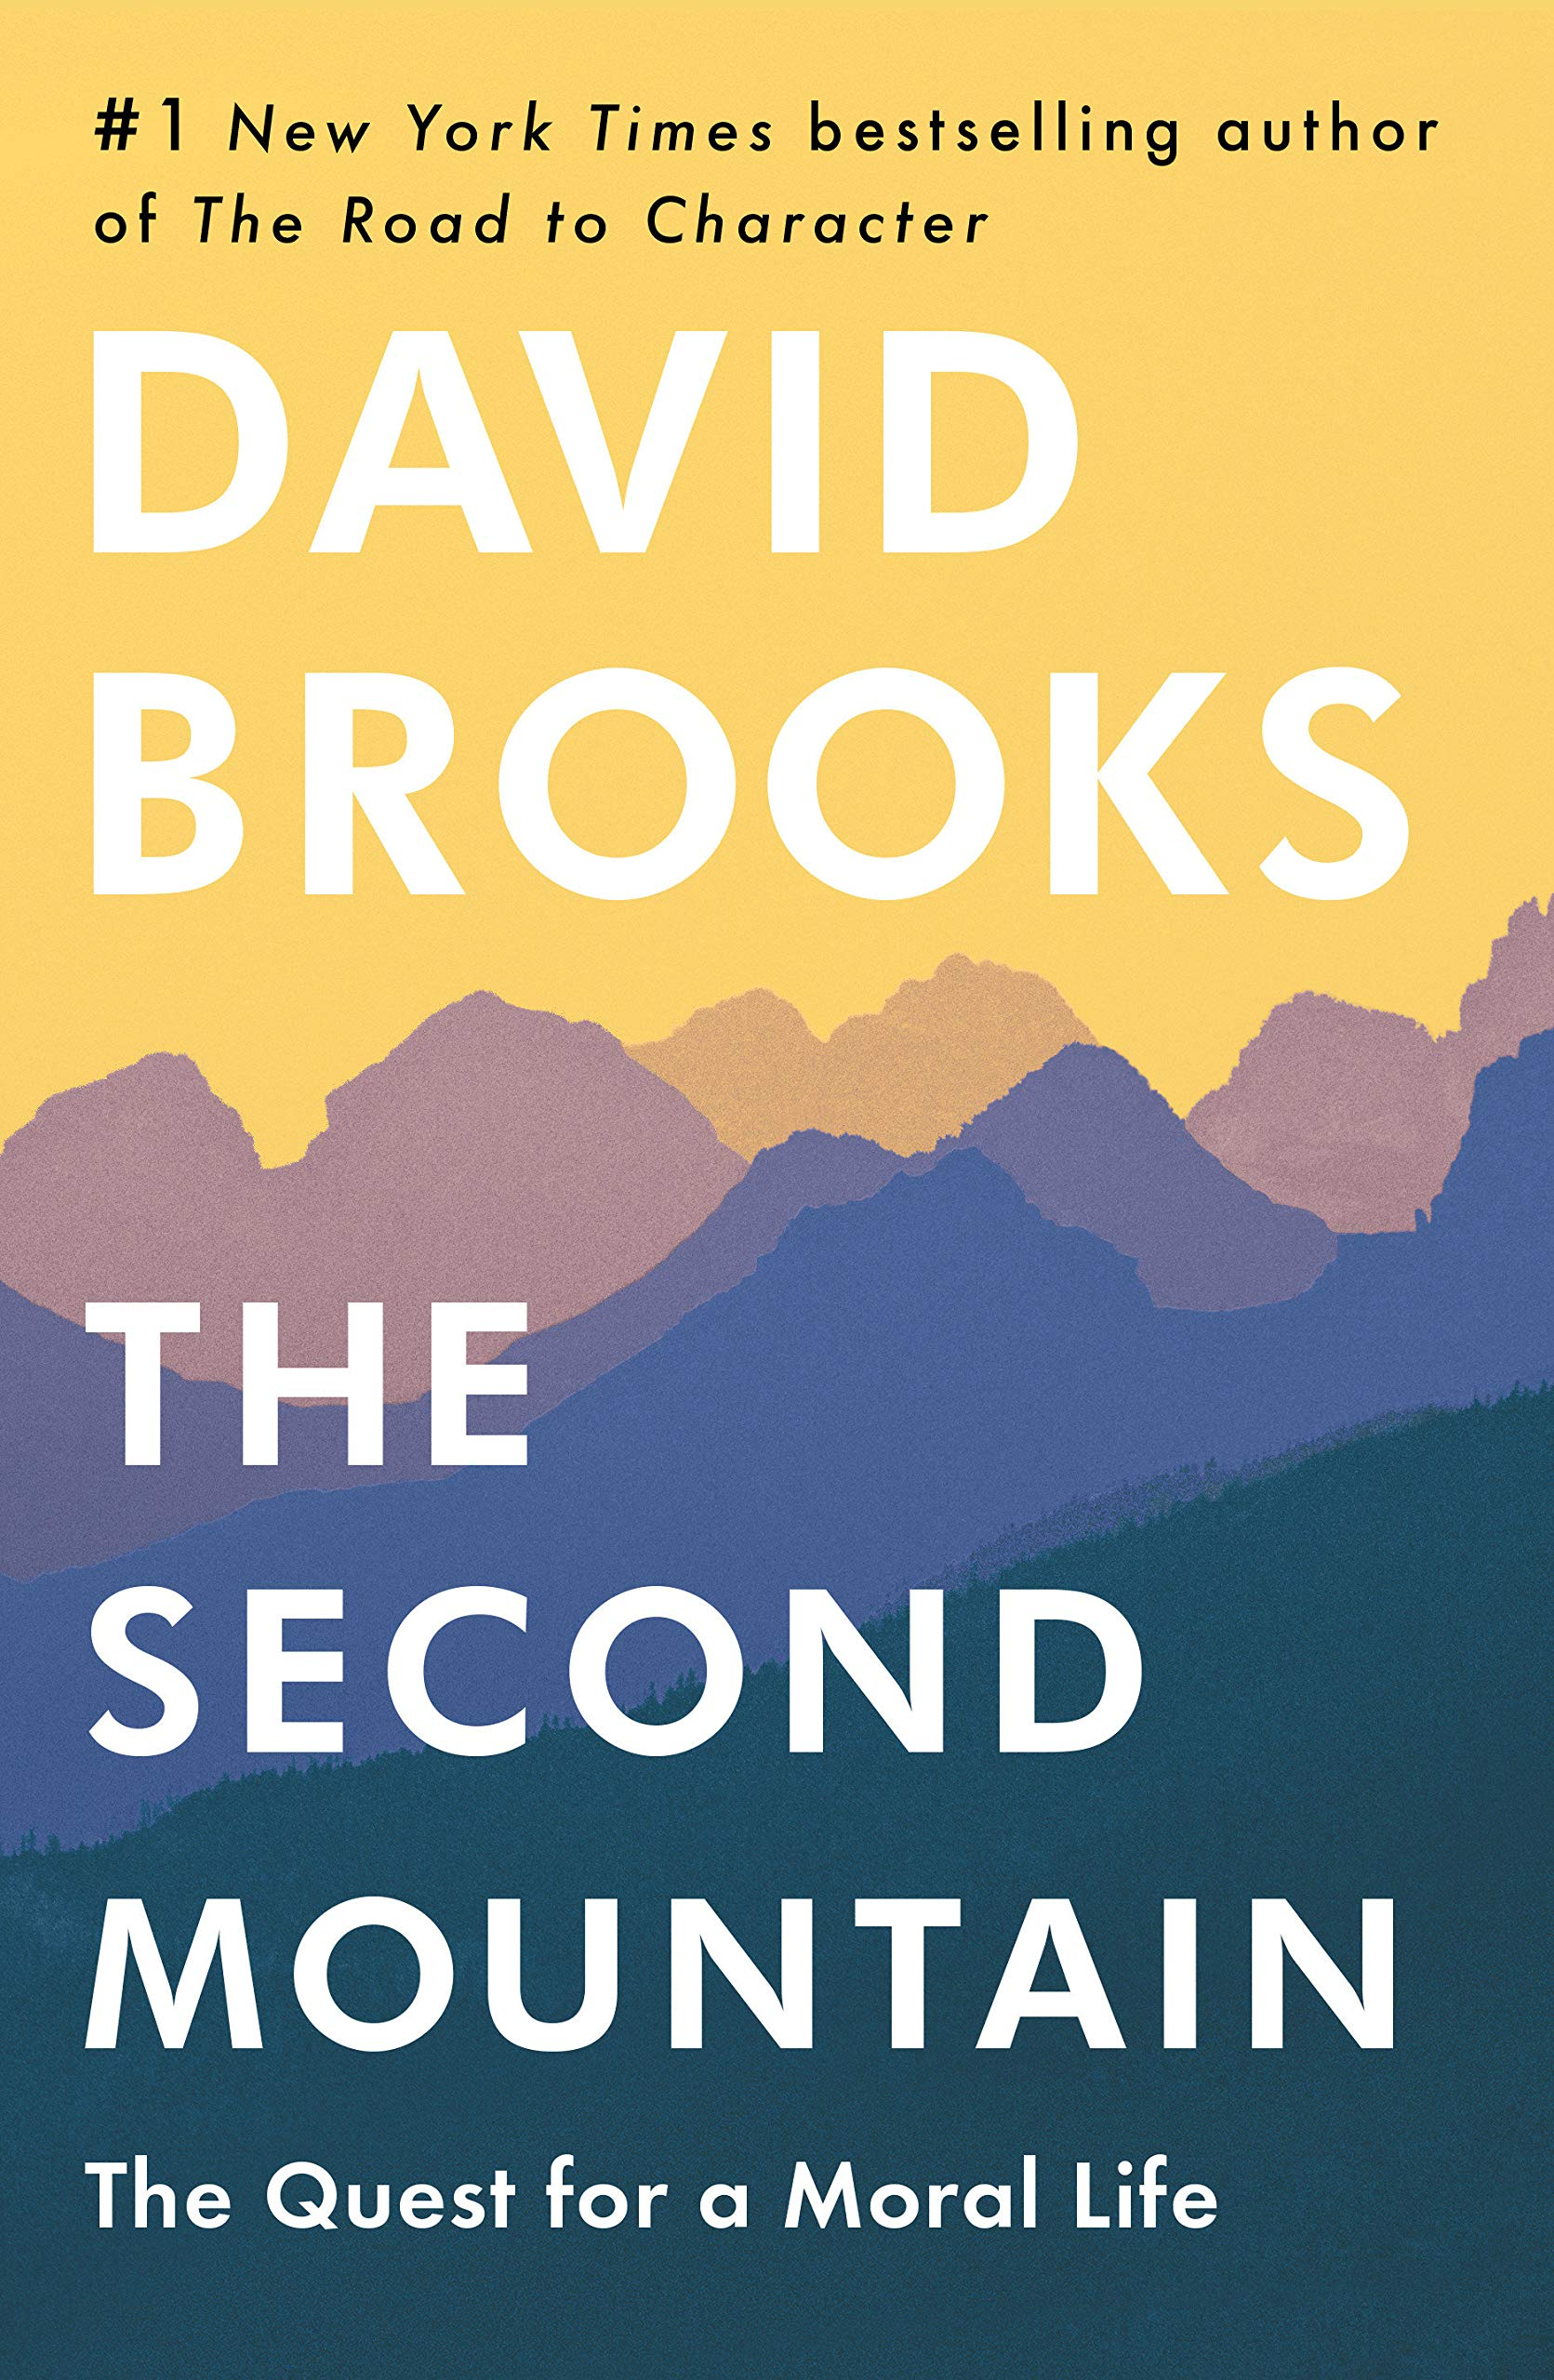 Second Mountain by David Brooks book cover.